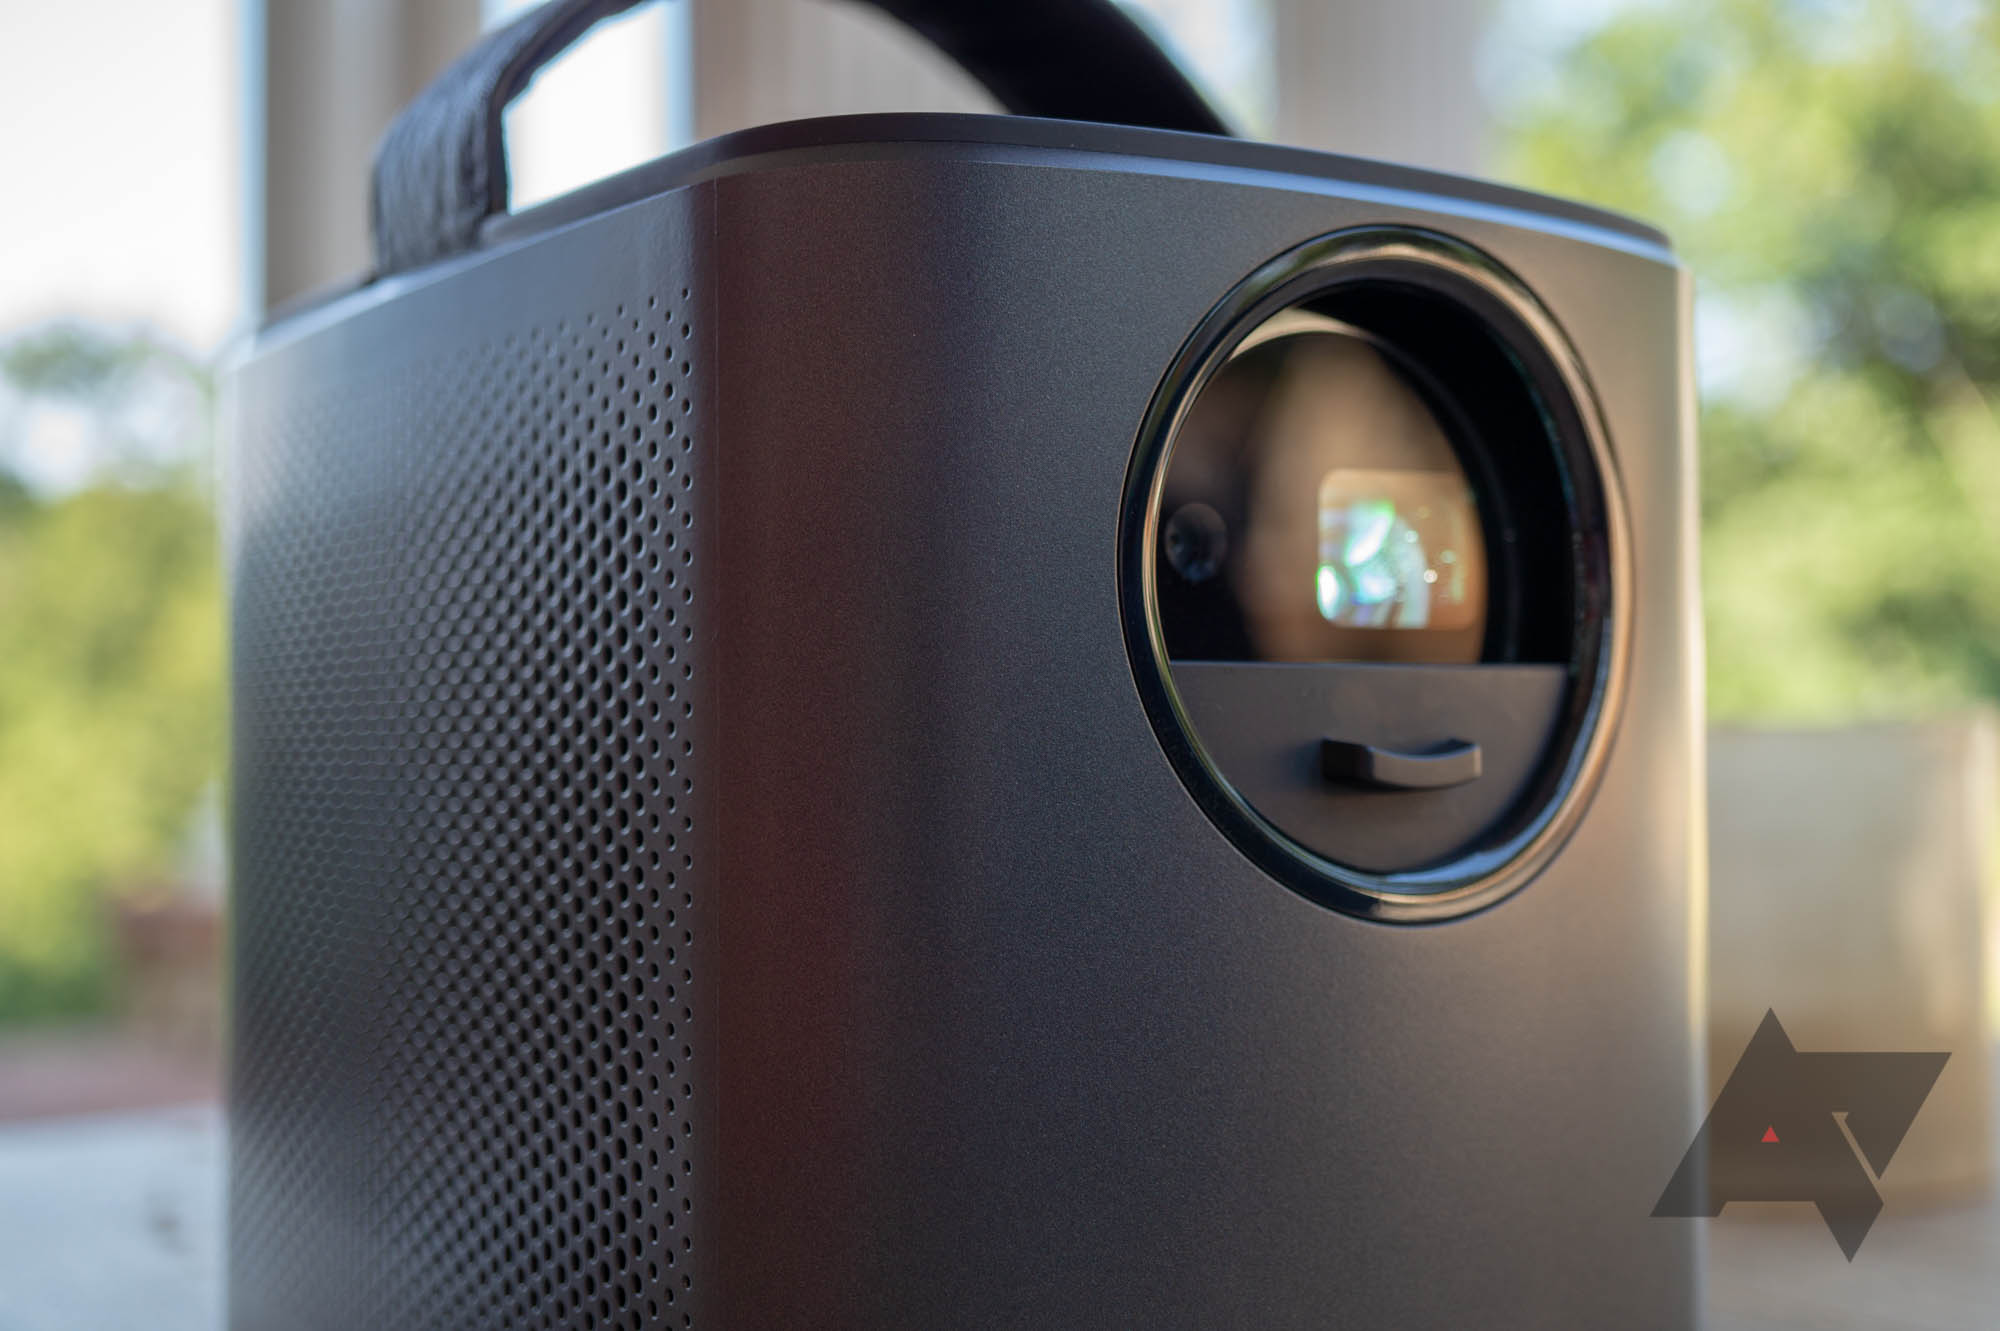 8 of our favorite tech deals this week: Phone clearance prices, projectors, and more